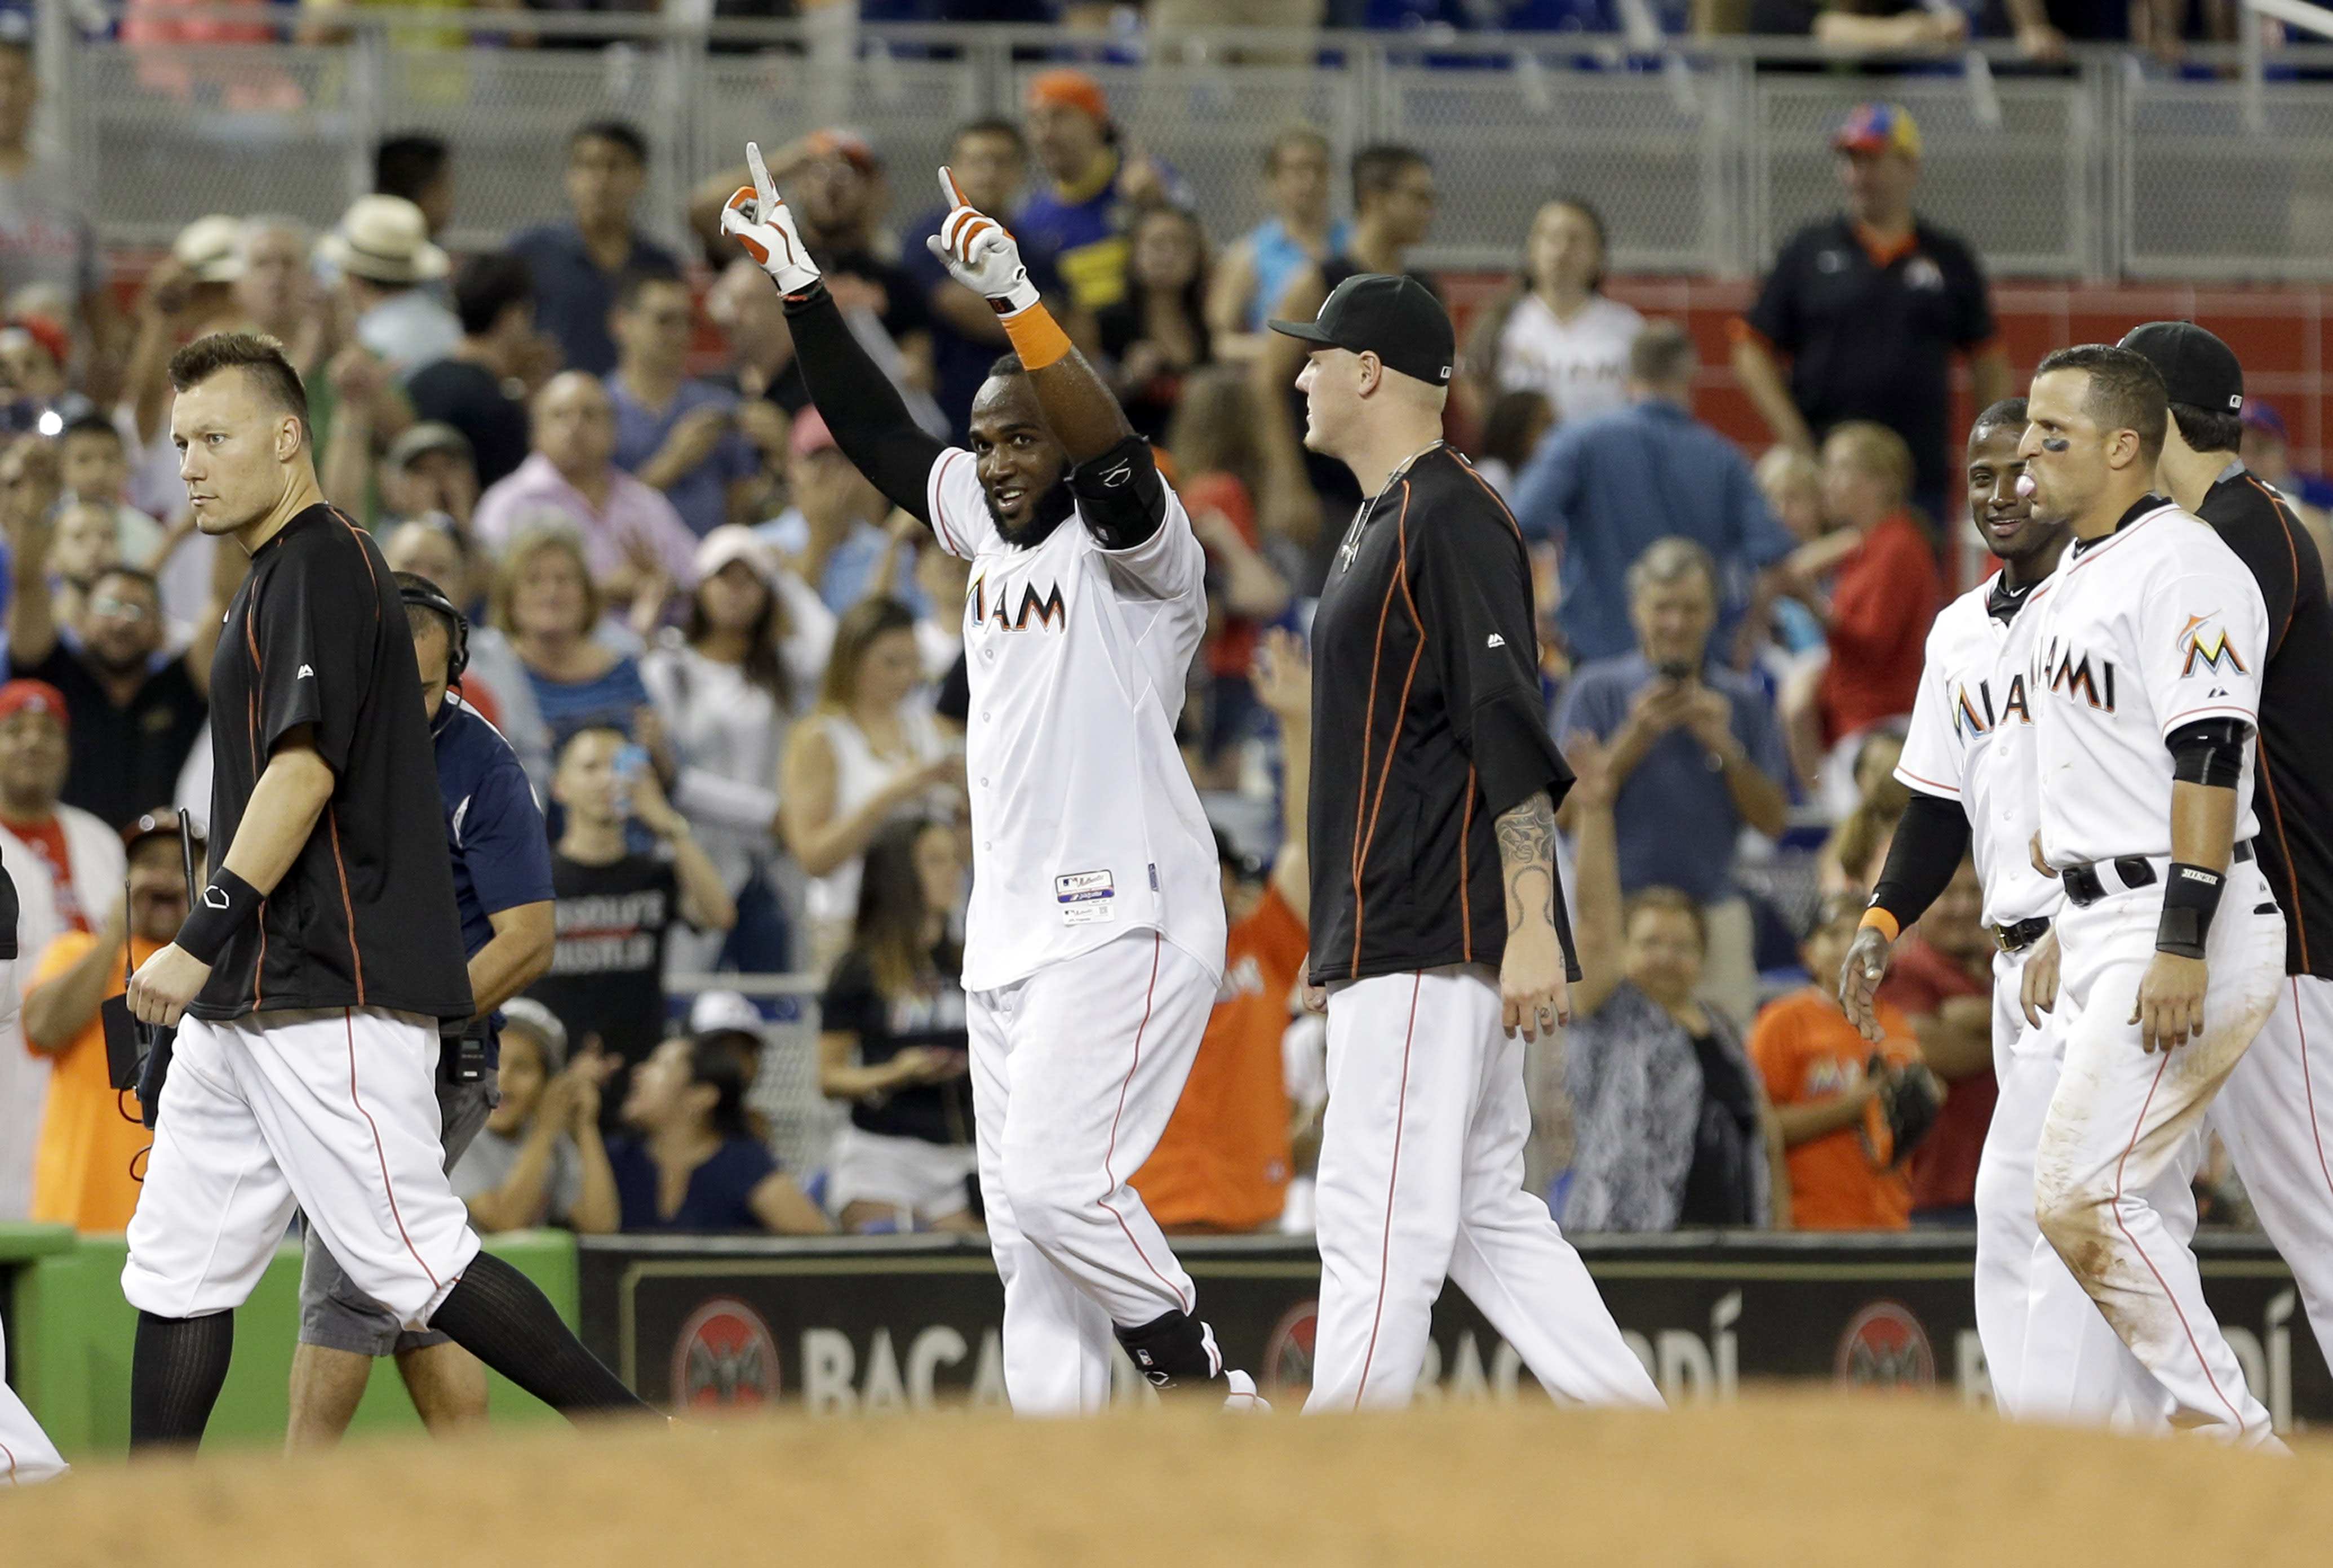 Marlins stay hot, score in 9th to top Phillies 4-3